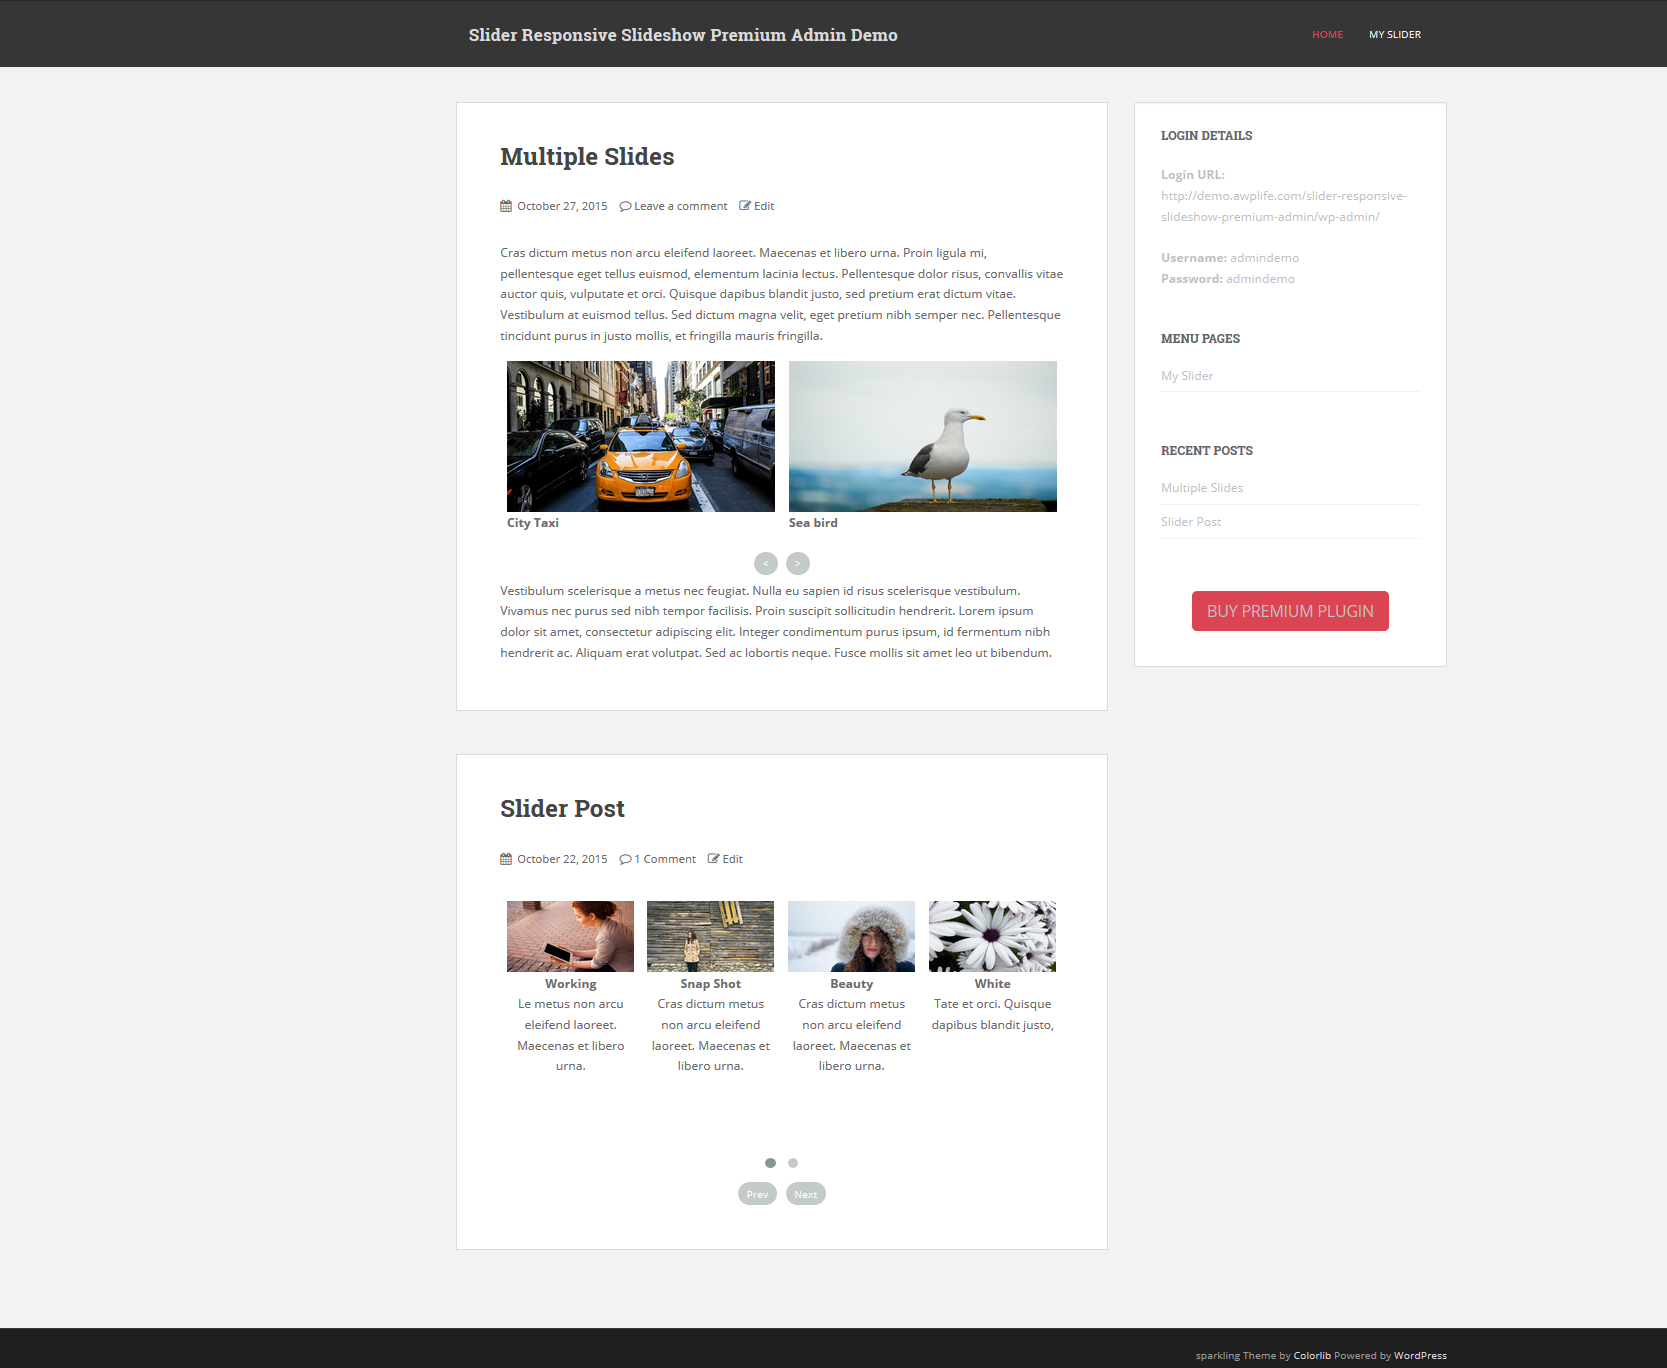 Preview (Slider Responsive Gallery)